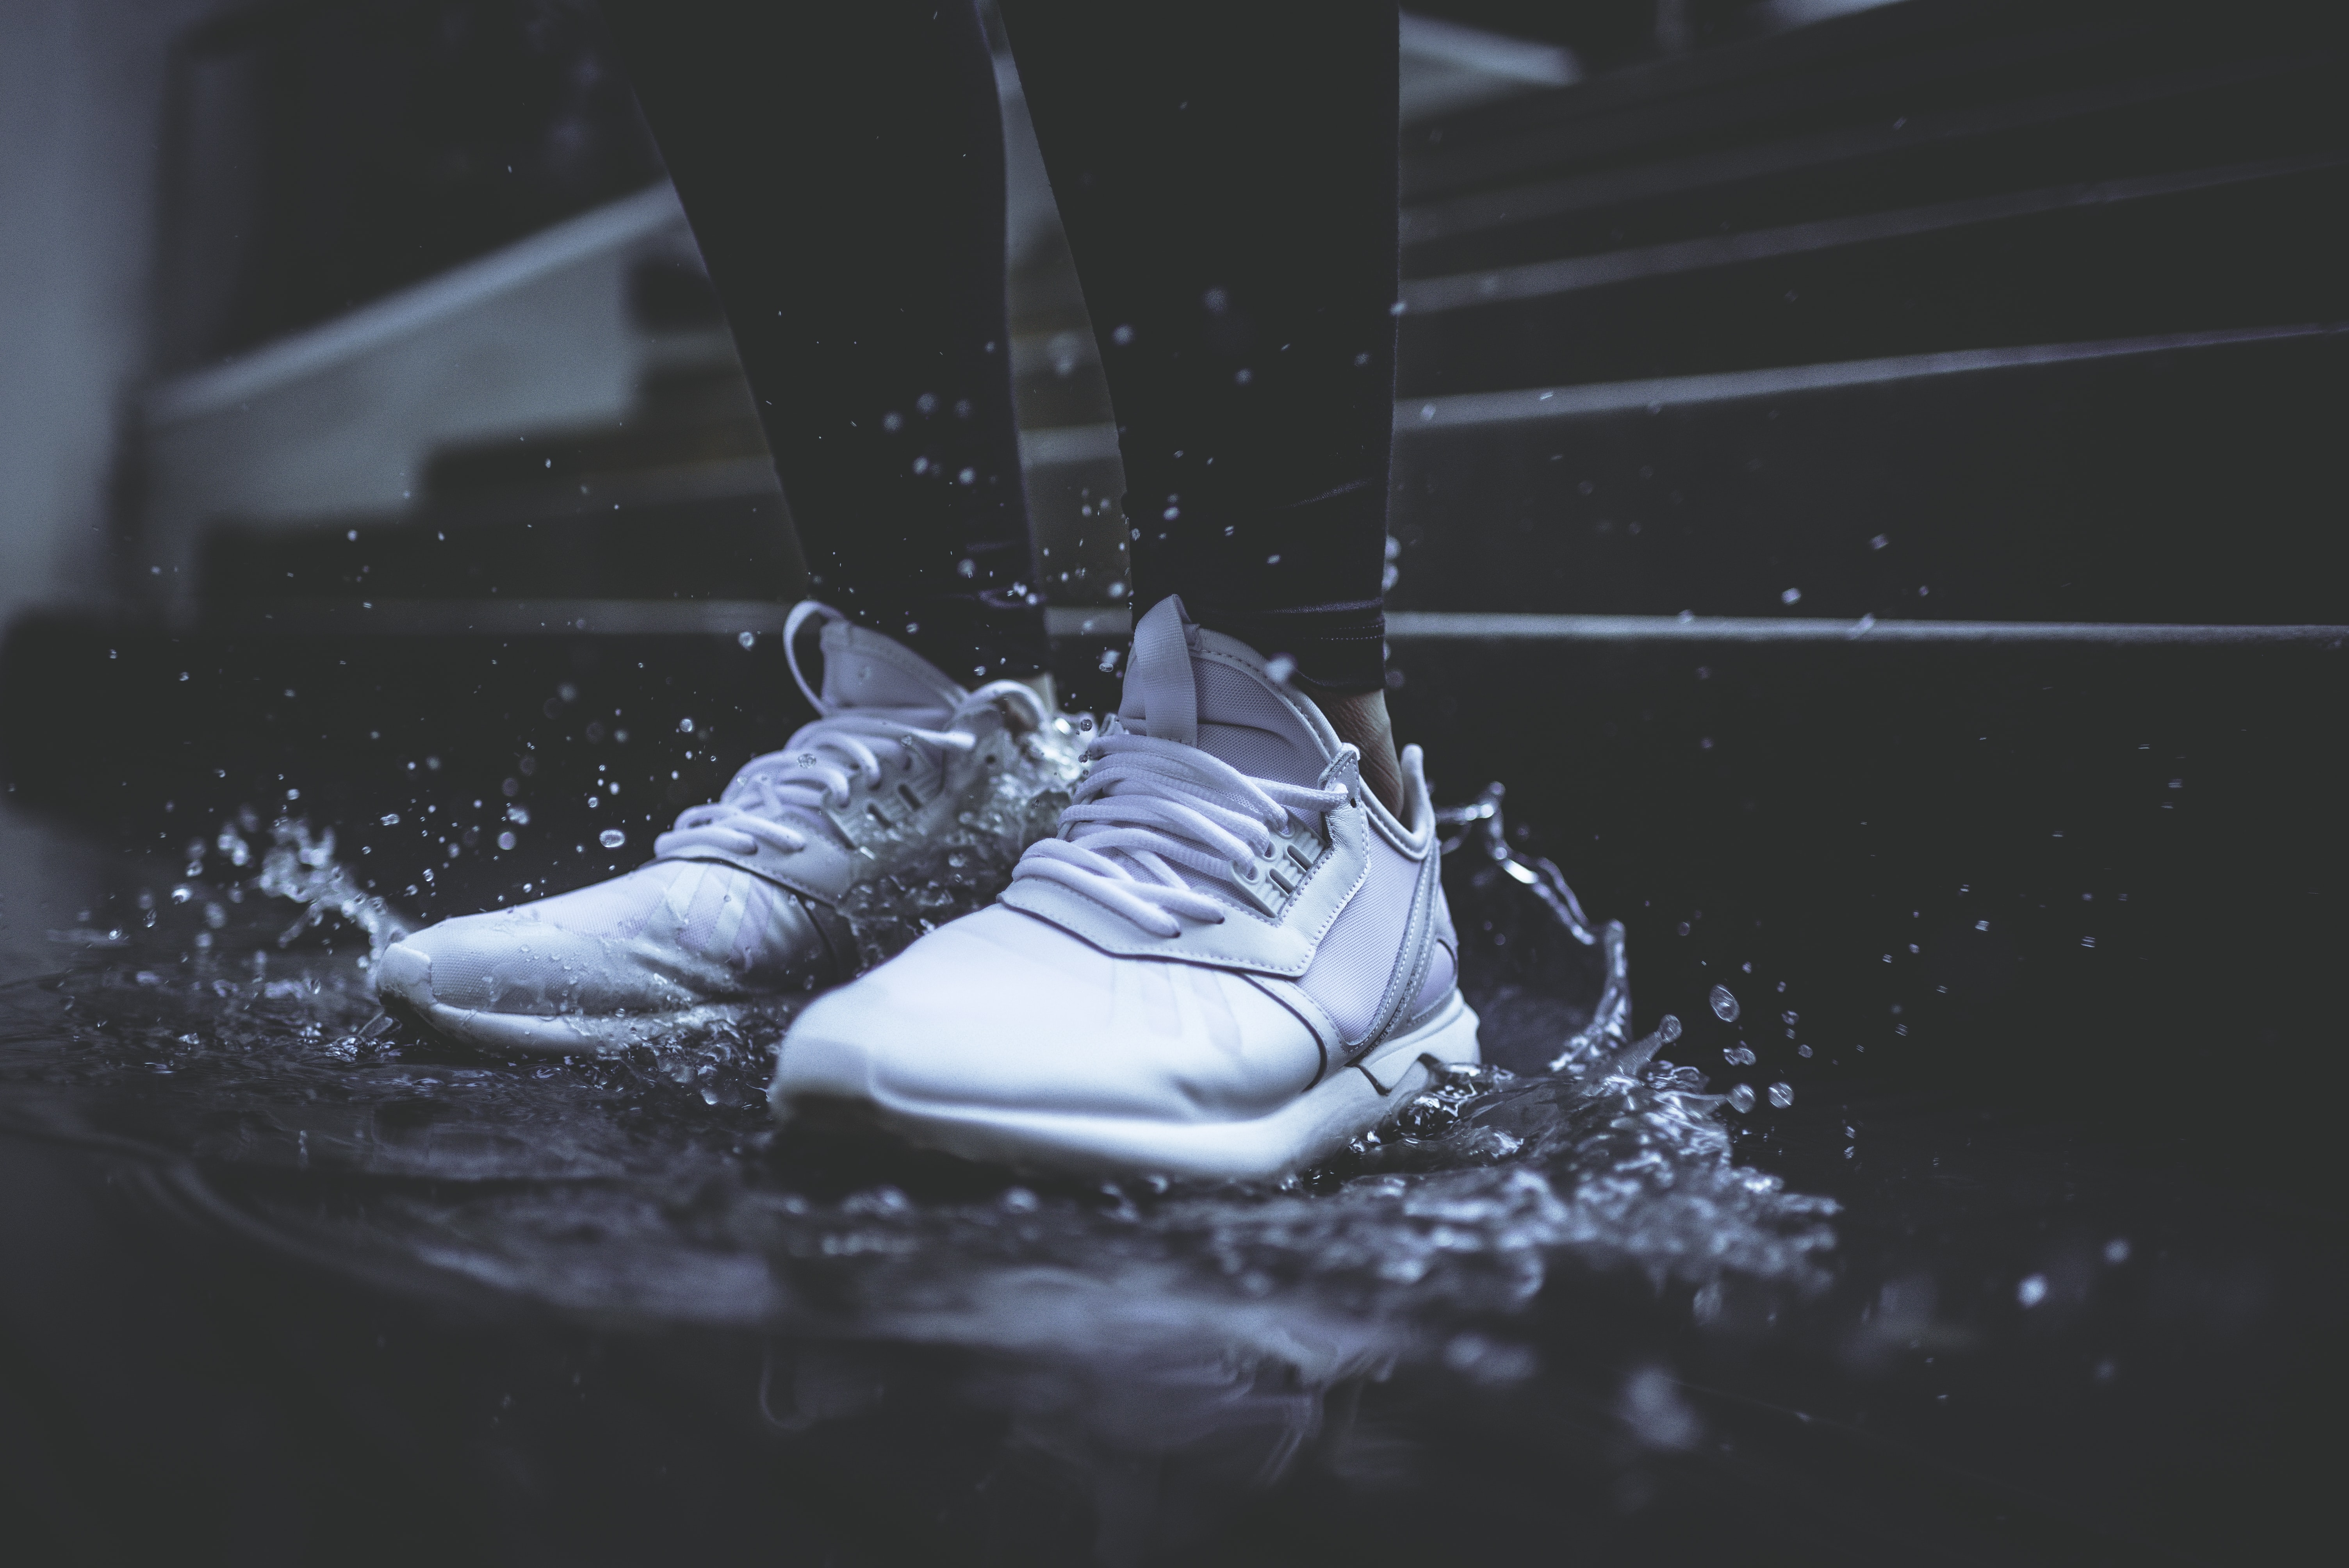 A pair of white shoes splashing into a puddle on a London street